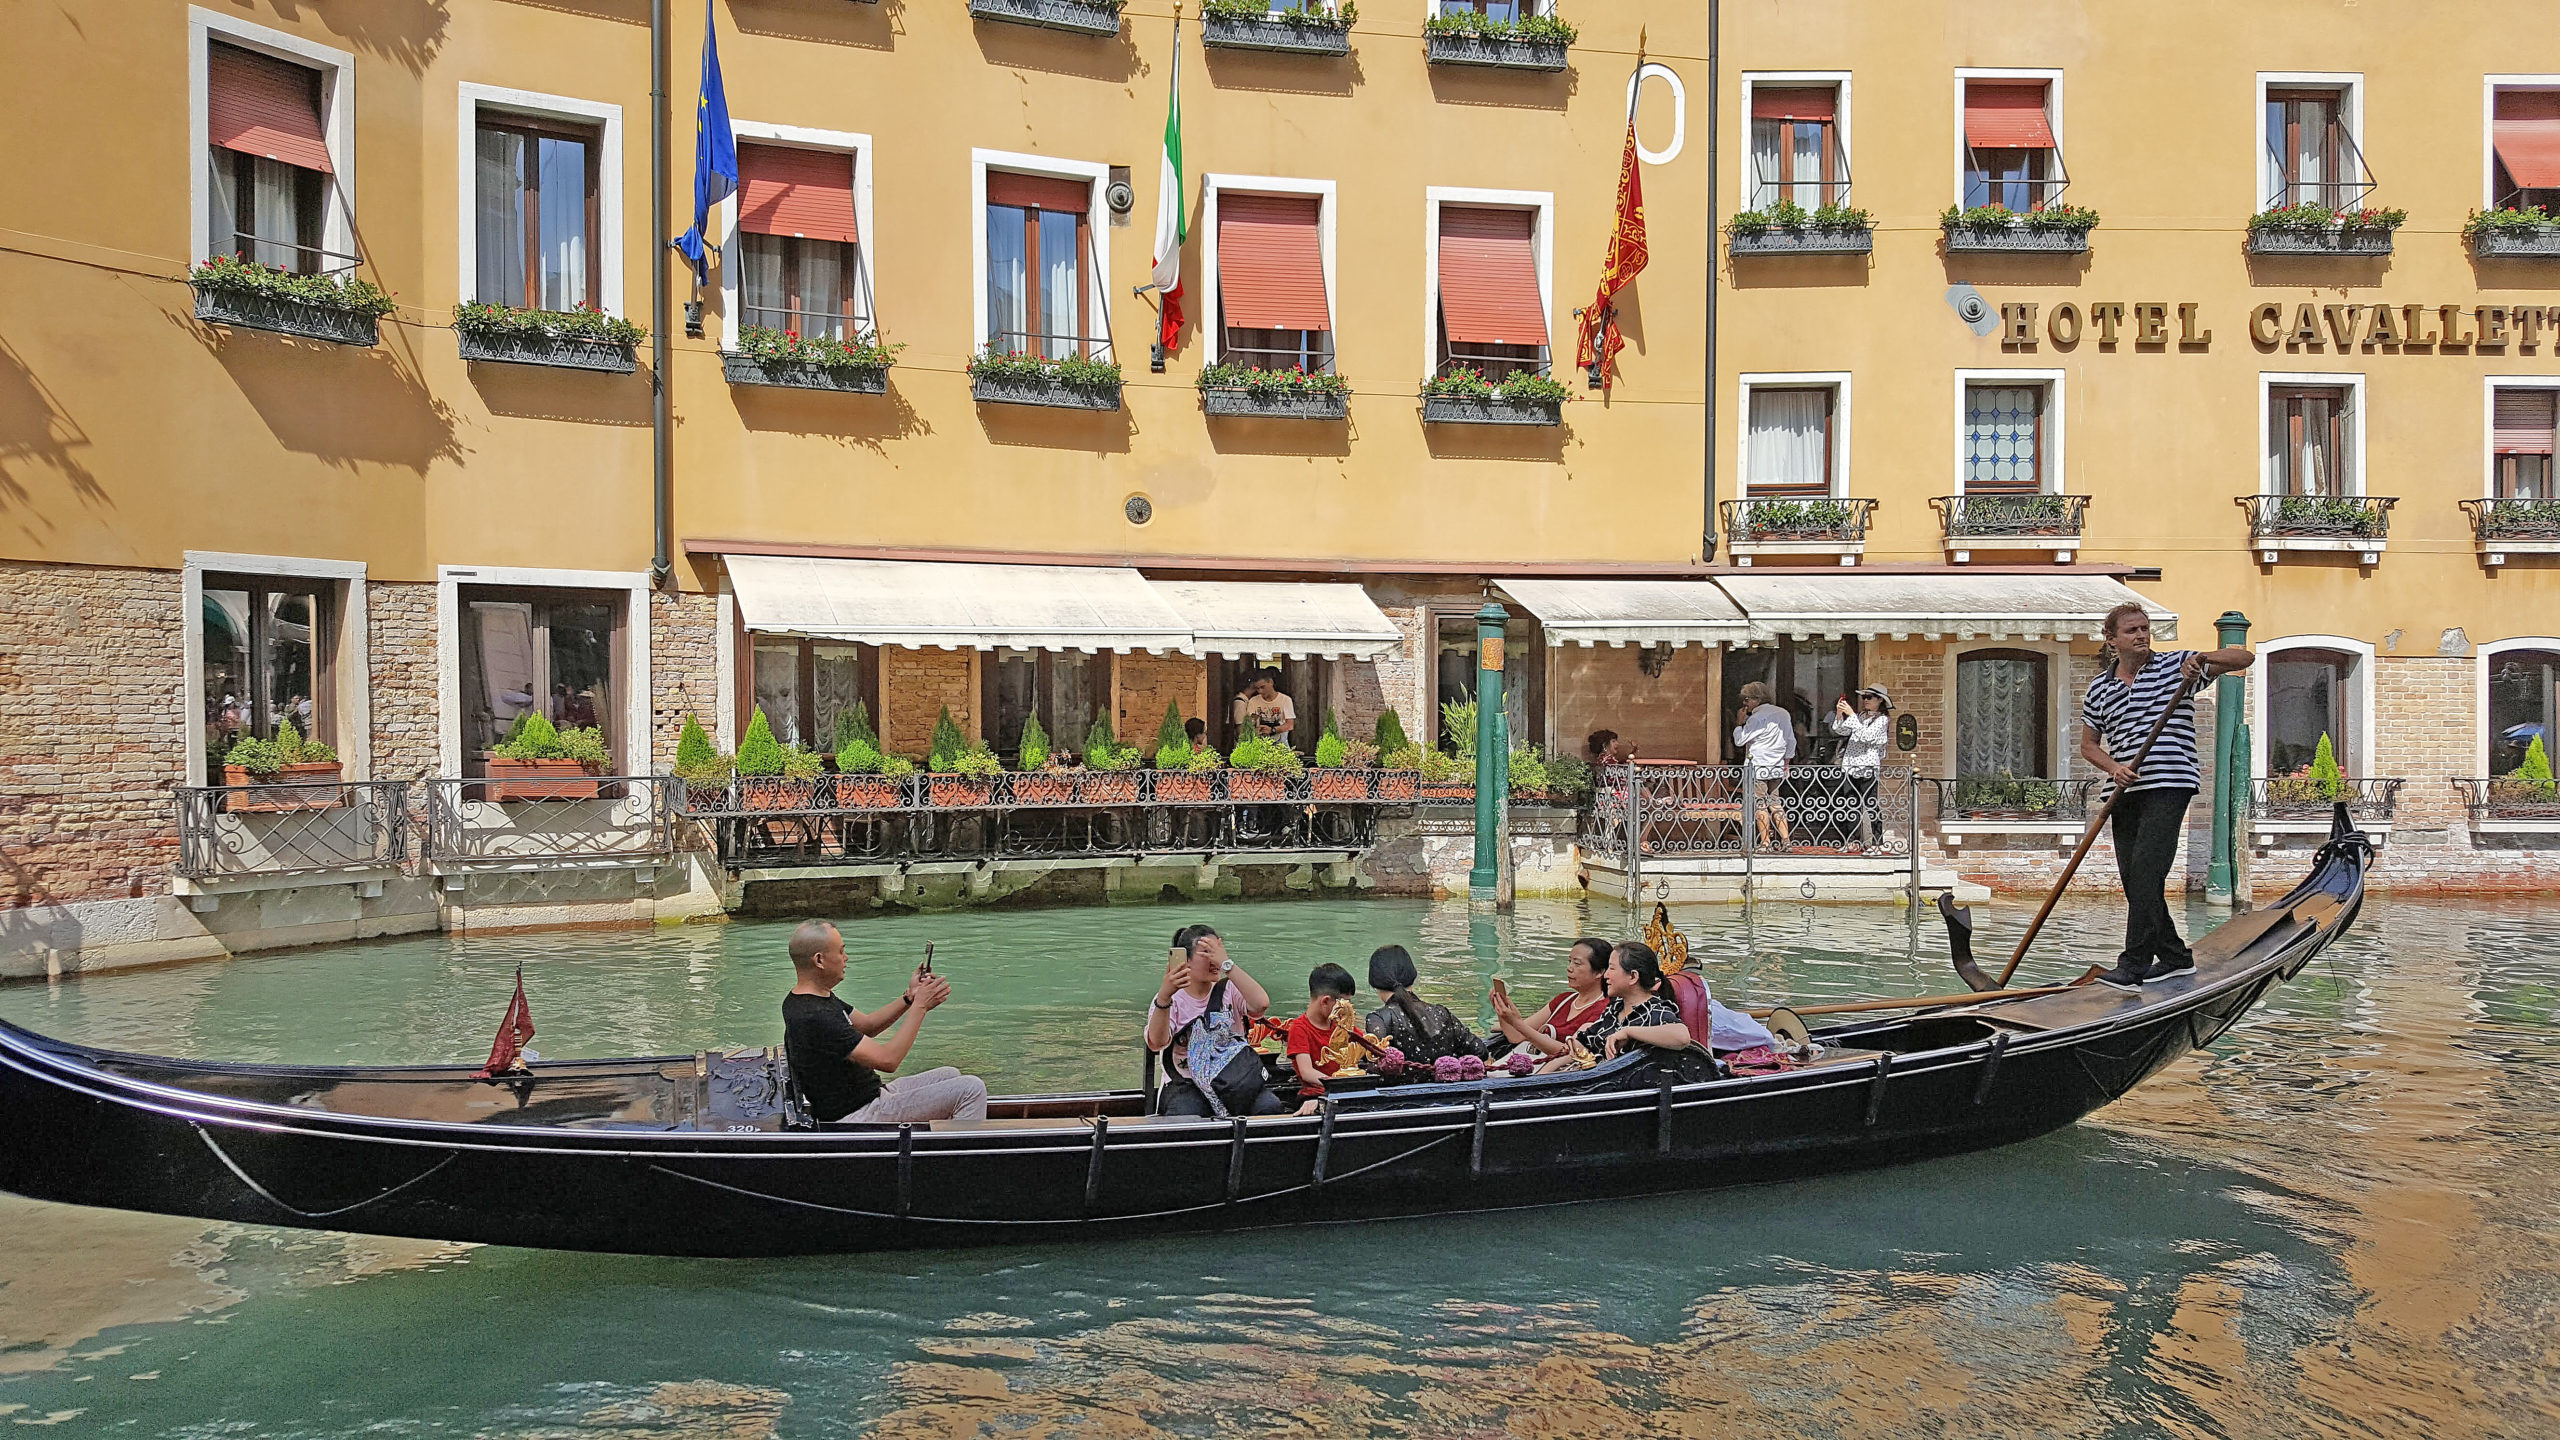 Gondola ride - don't forget to research the best way to exchange foreign currency.